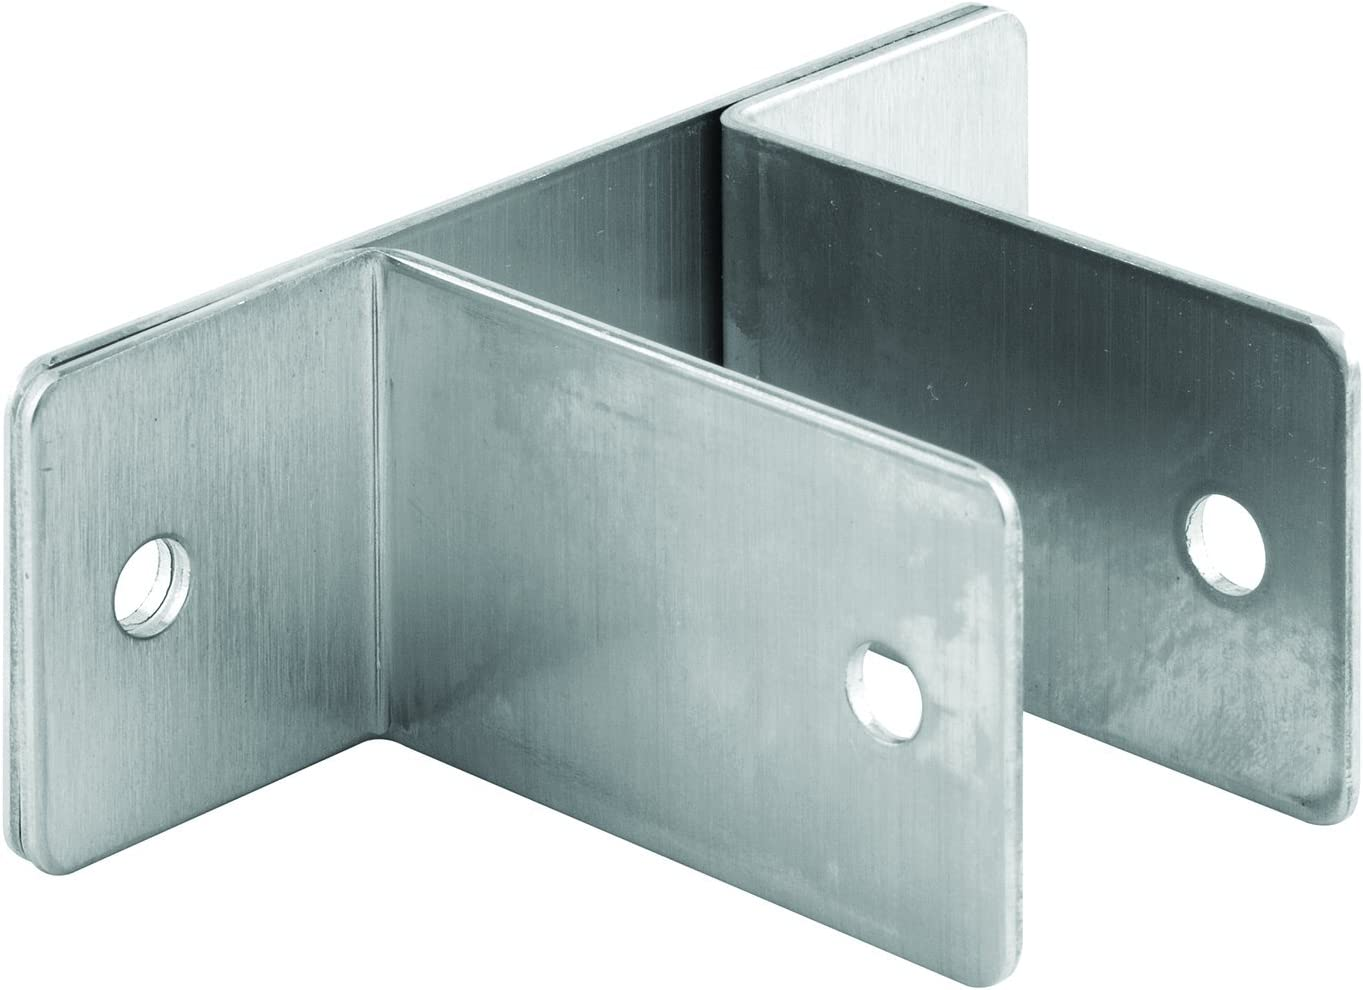 Sentry Supply 650-8142 Two Ear Wall Bracket, for Panel size 1 inch, Stamped Stainless Steel, Pack of 1